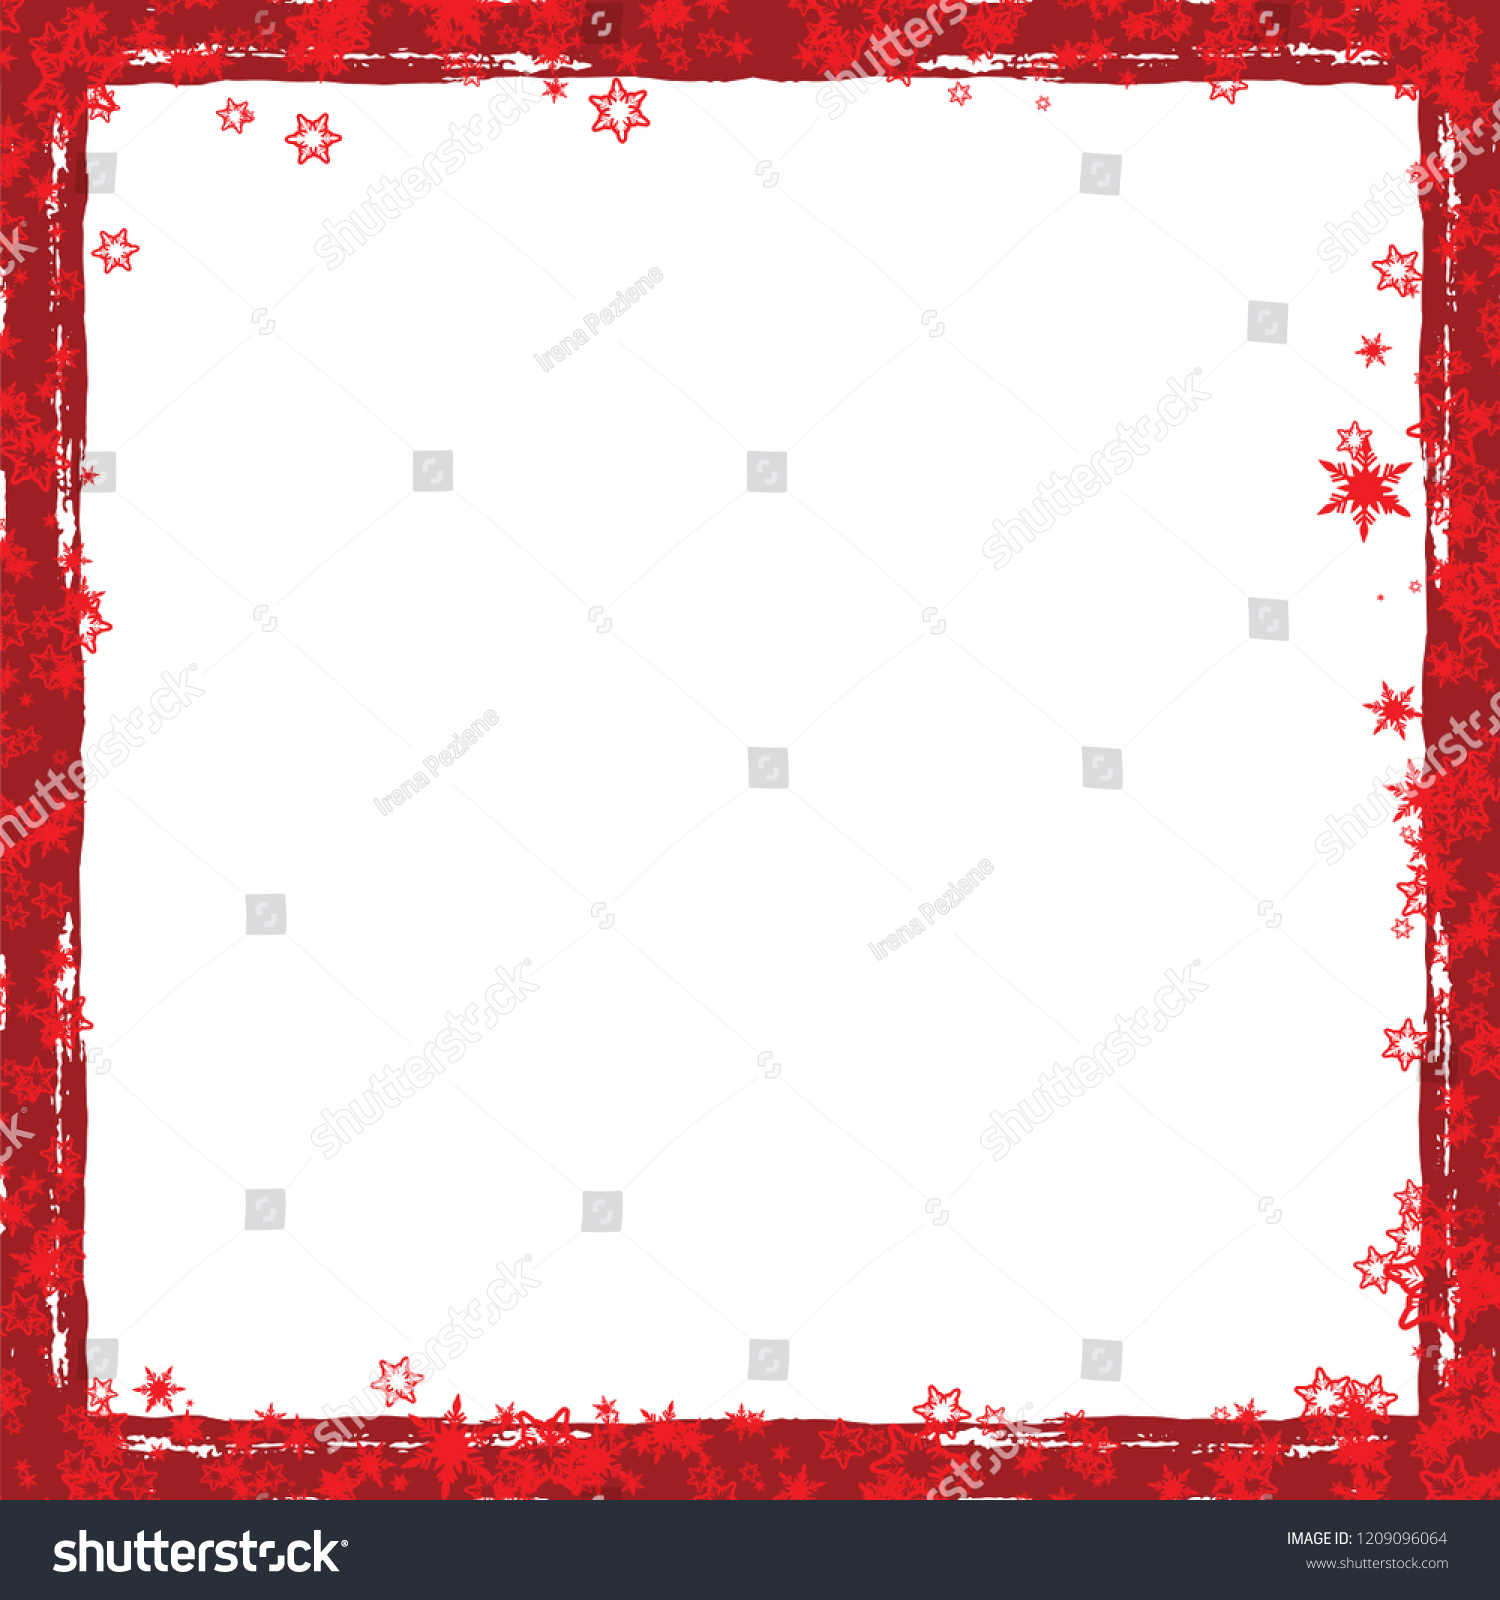 Red Christmas Frame With Snowflakes #1209096064